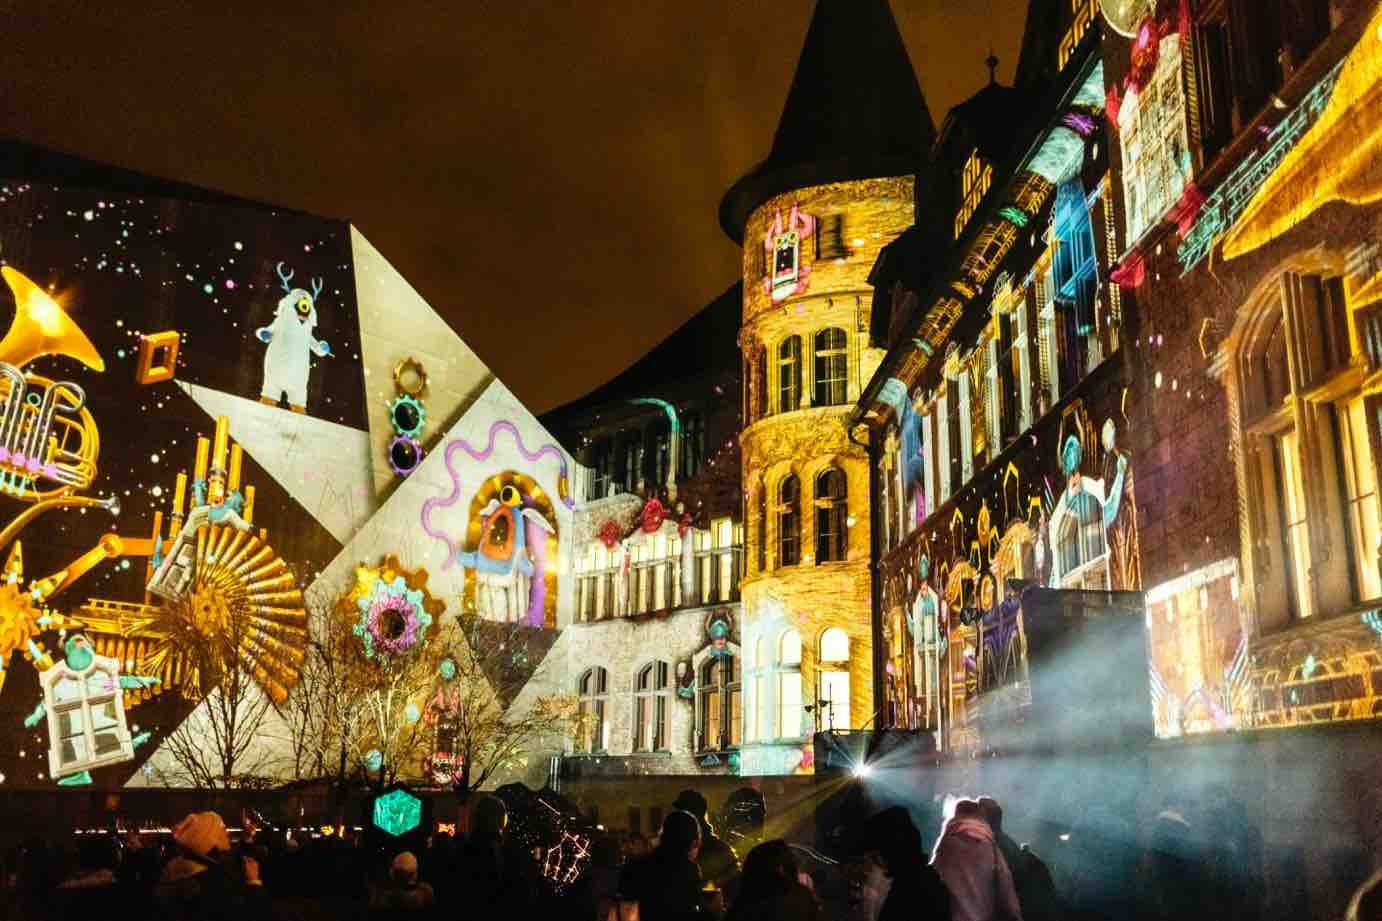 ILLUMINARIUM Light Show at Zurich's National Museum